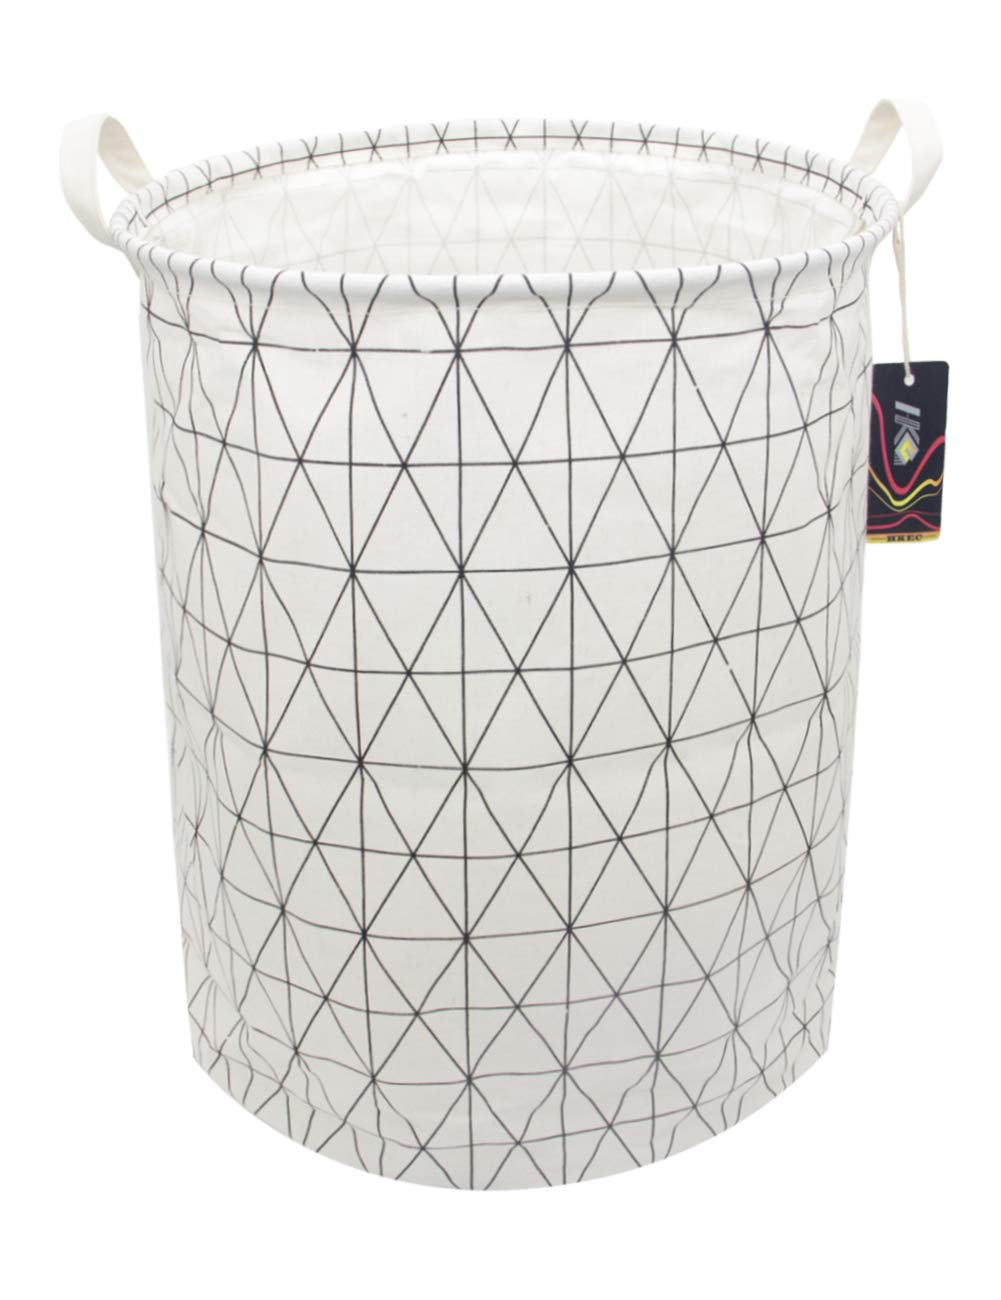 Basketball Toy Bins Dirty Clothes Laundry Basket HKEC 19.7/'/' Waterproof Foldable Storage Bin Canvas Organizer Basket for Laundry Hamper Gift Baskets Clothes Baby Hamper Bedroom